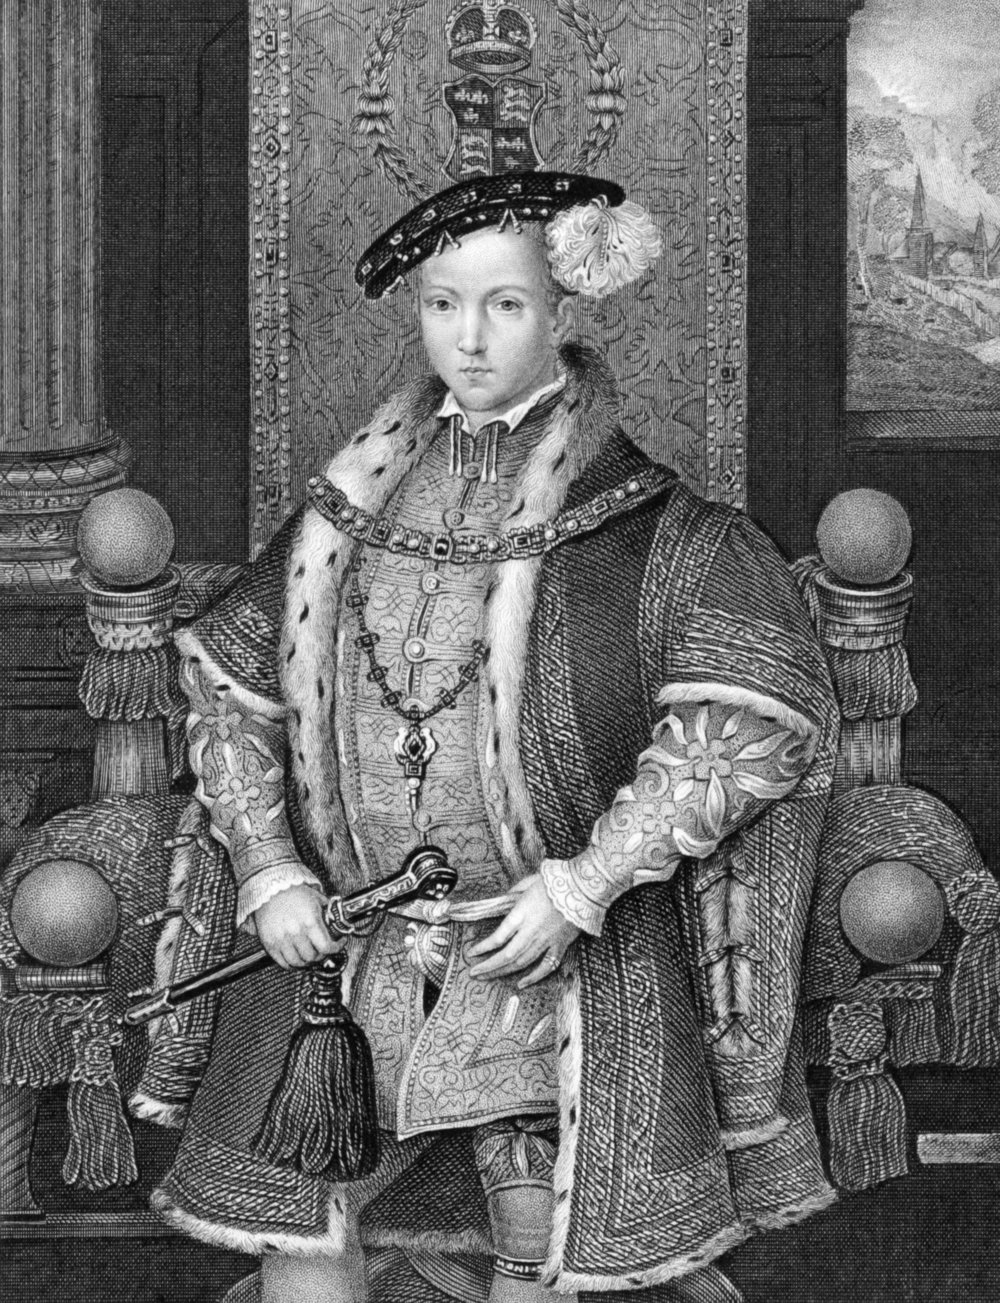 Edward VI, King Henry VIII's son, was a devout Protestant.